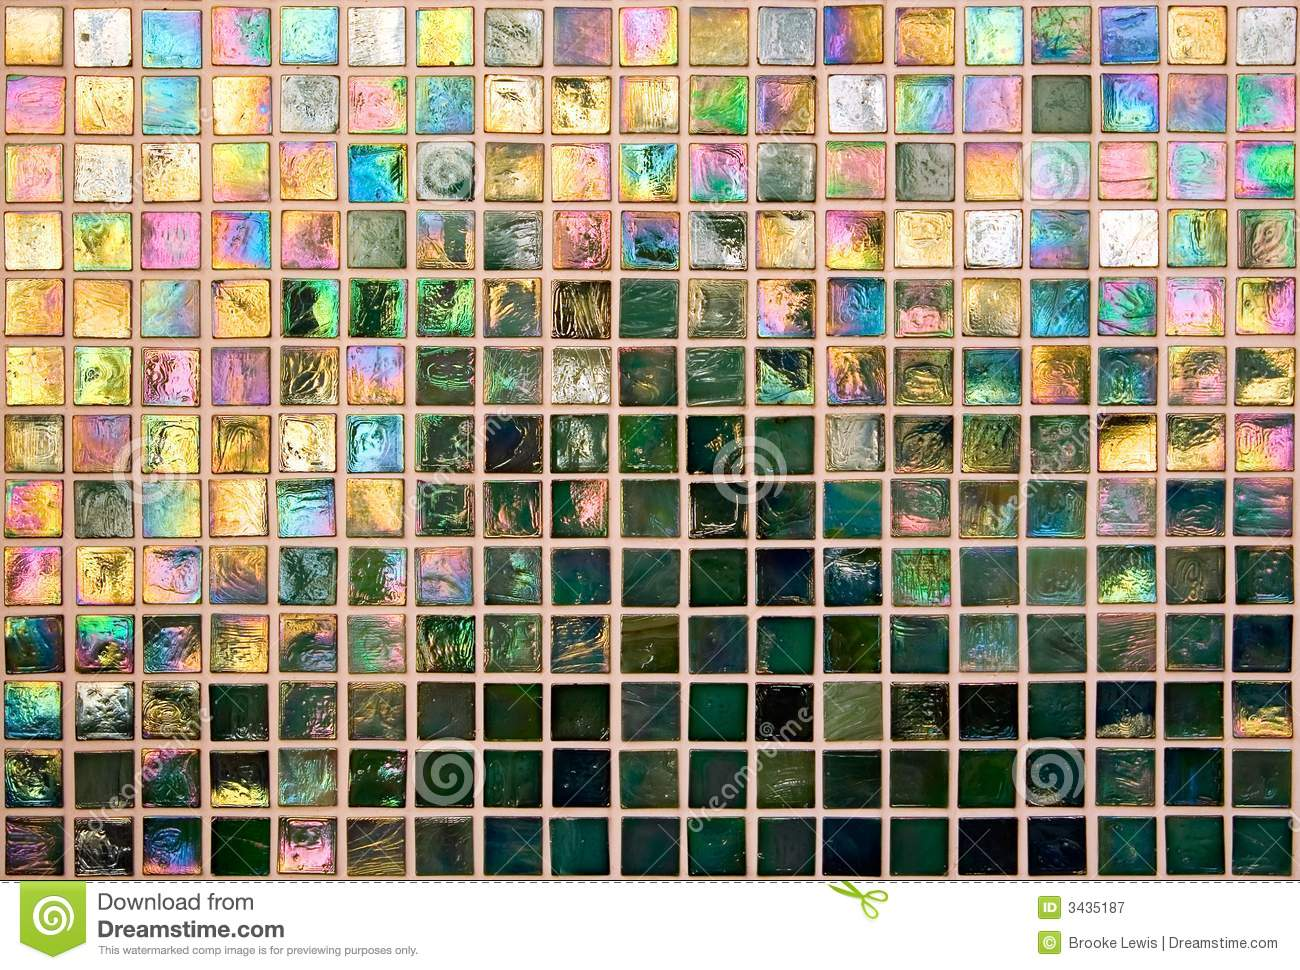 iridescent-tile-wall-3435187